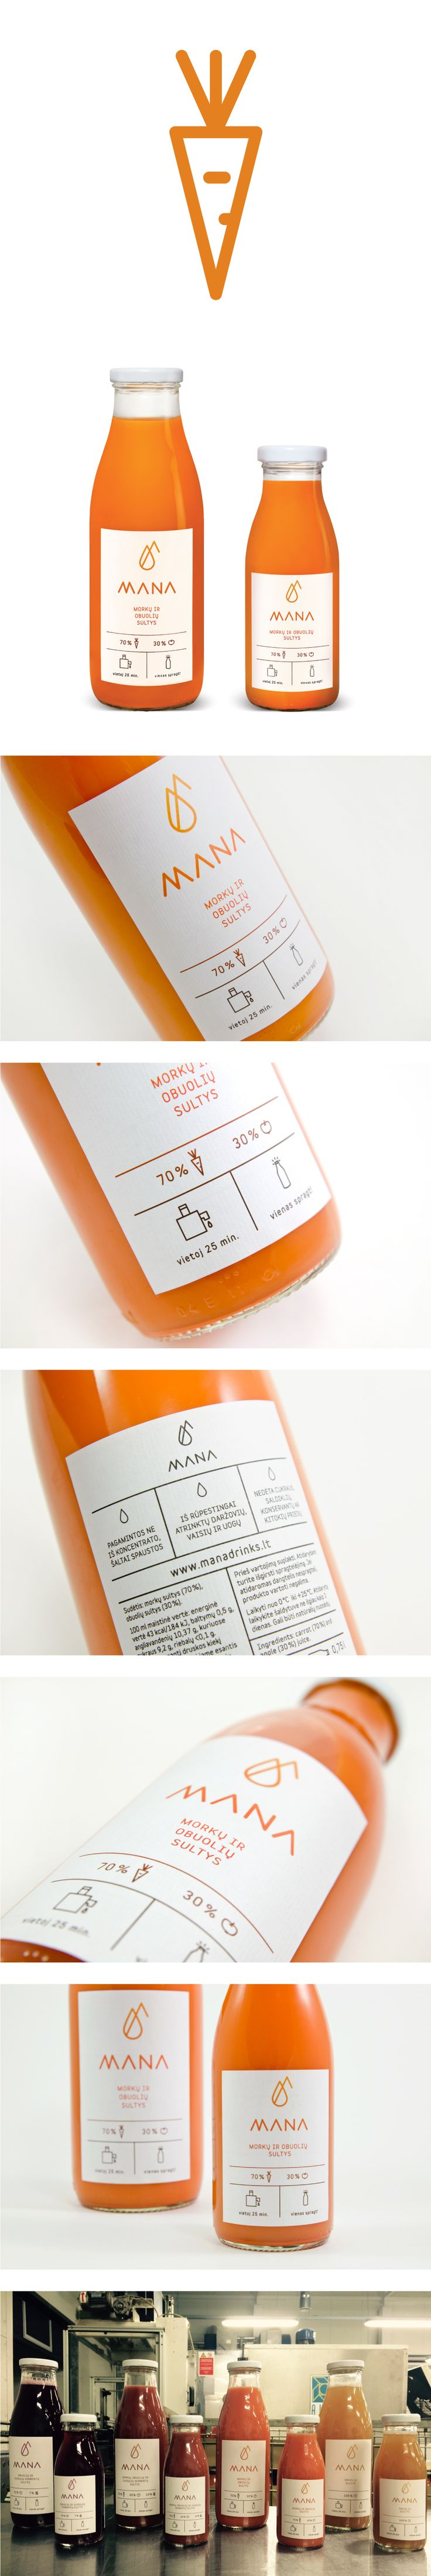 MANA – premium category cold-pressed juice. Designed by PRIM PRIM studio / www.primprim.lt. Designers: Migl? Vasiliauskait?, Kotryna Zilinskien?, Kristina Liaudanskait?. Lithuania. (Bottle Packaging)